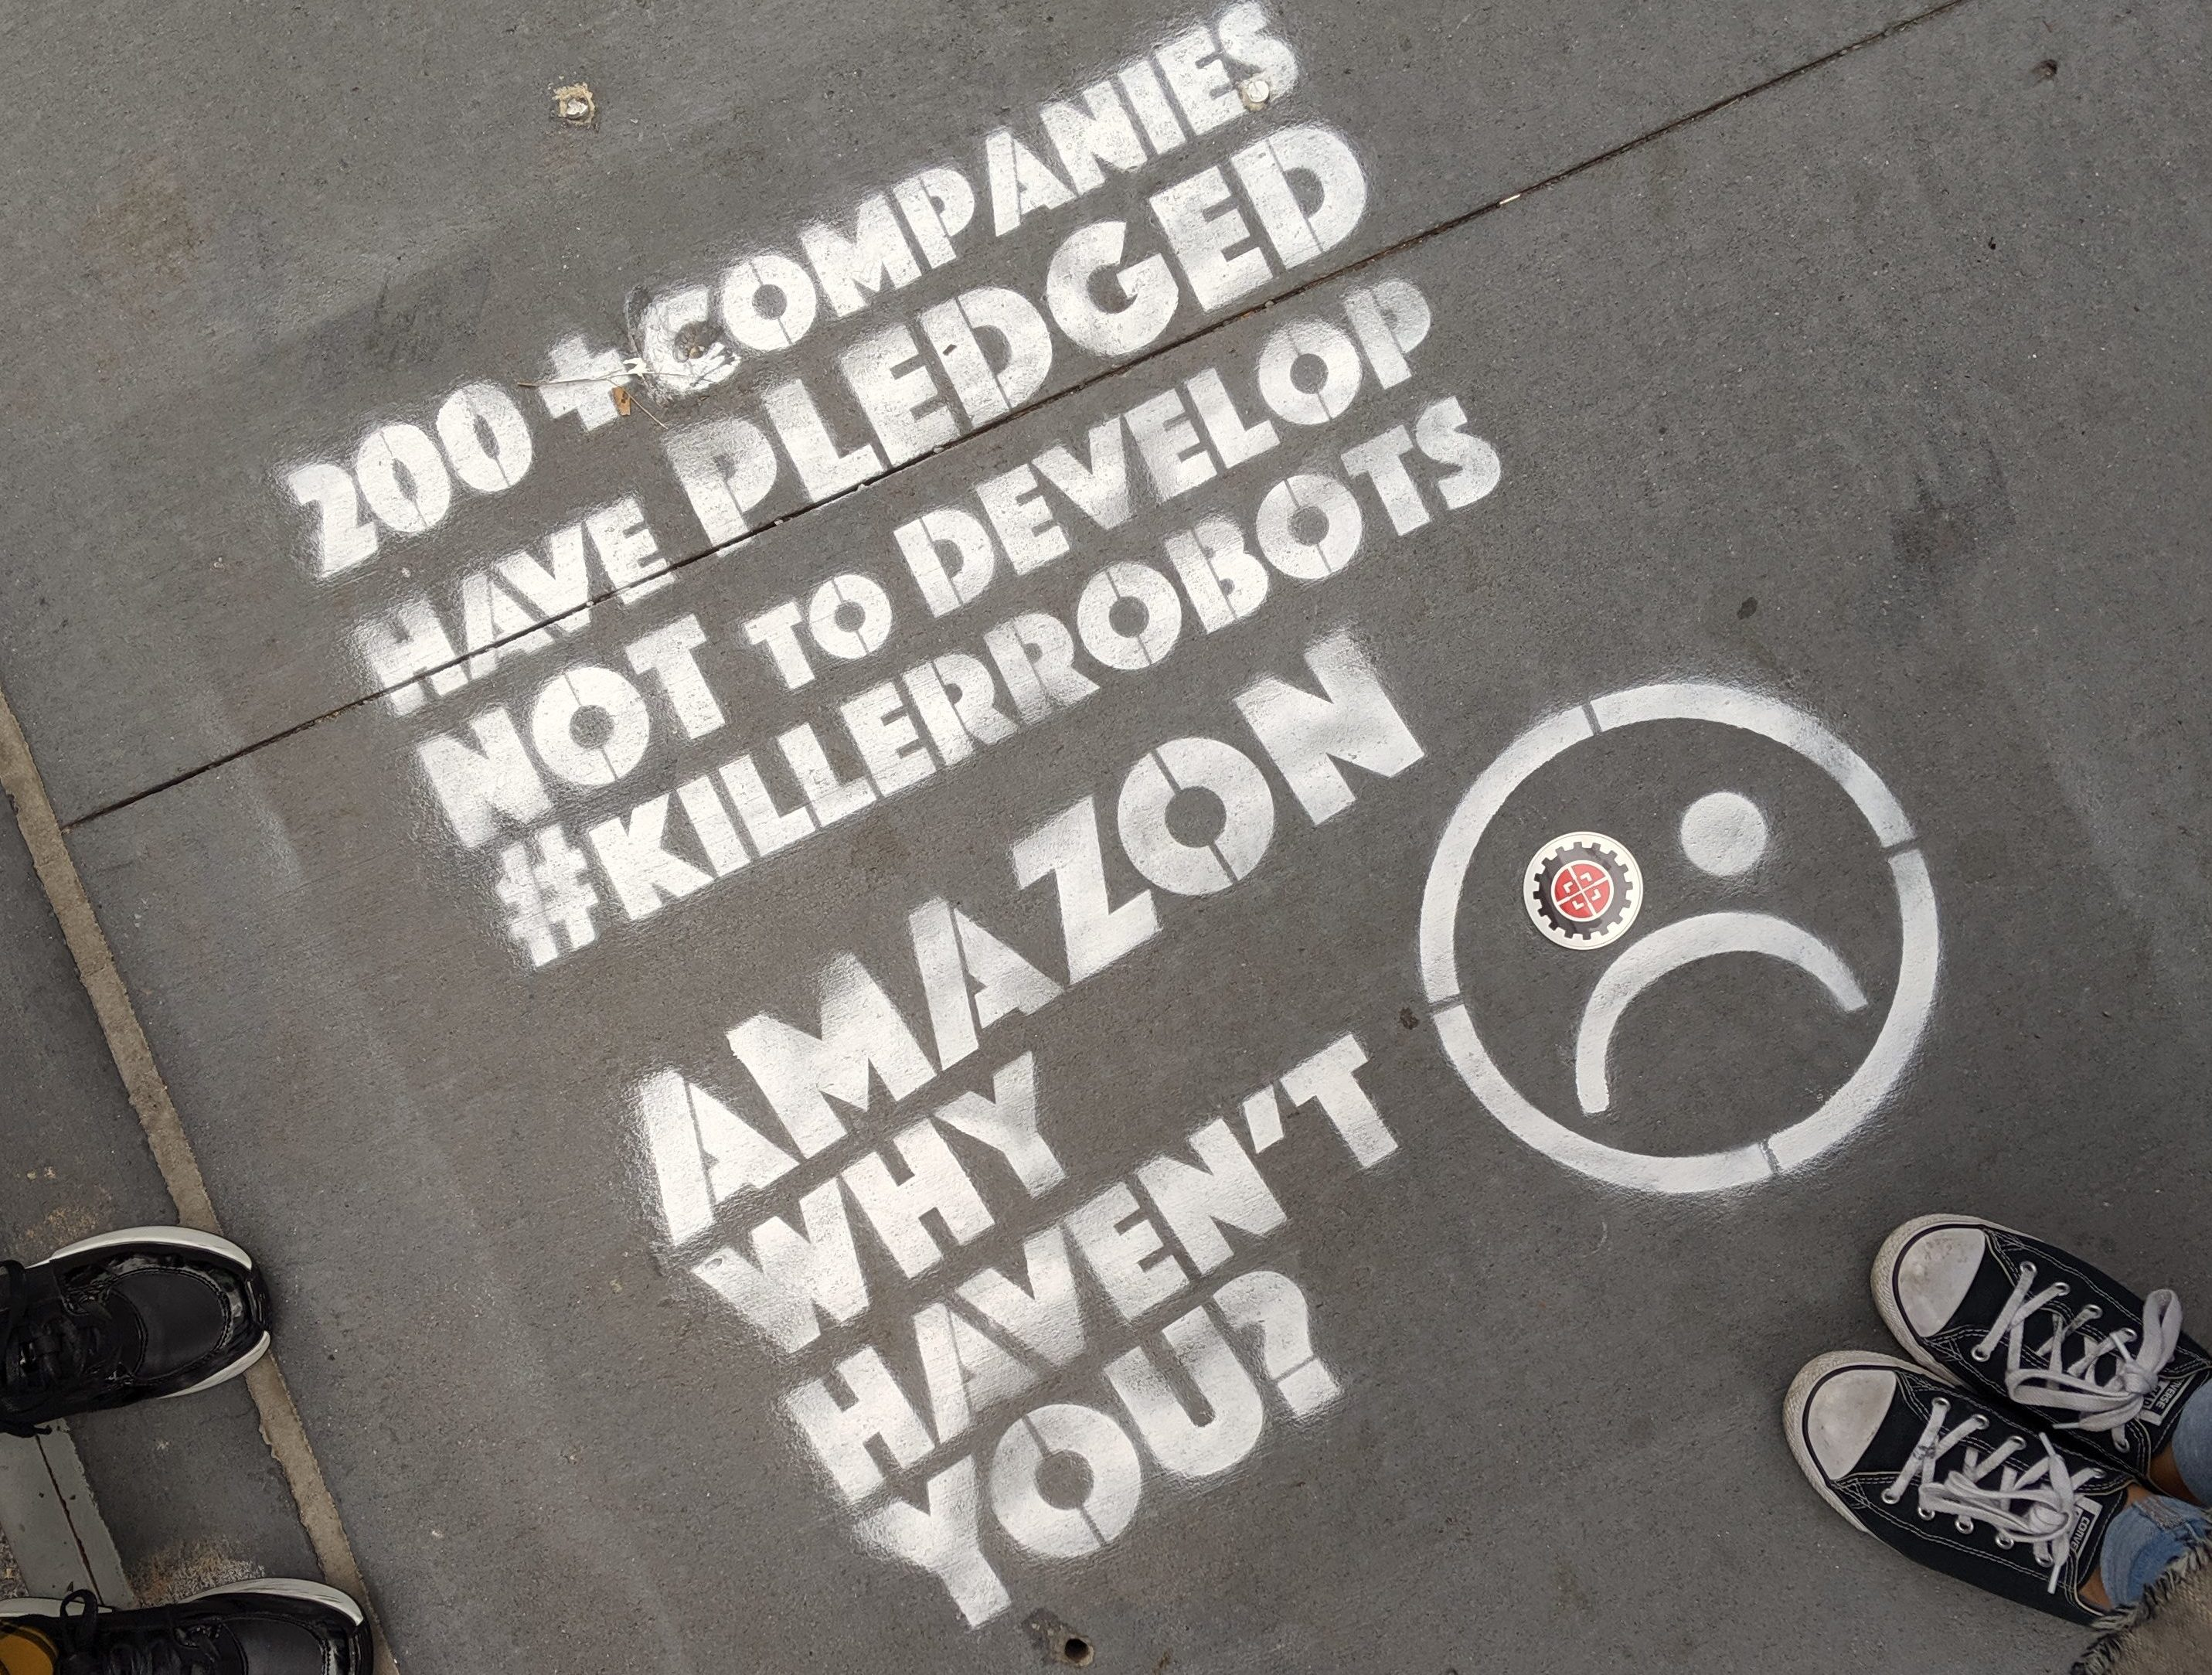 Street graffiti asks Amazon to pledge to not develop killer robots.